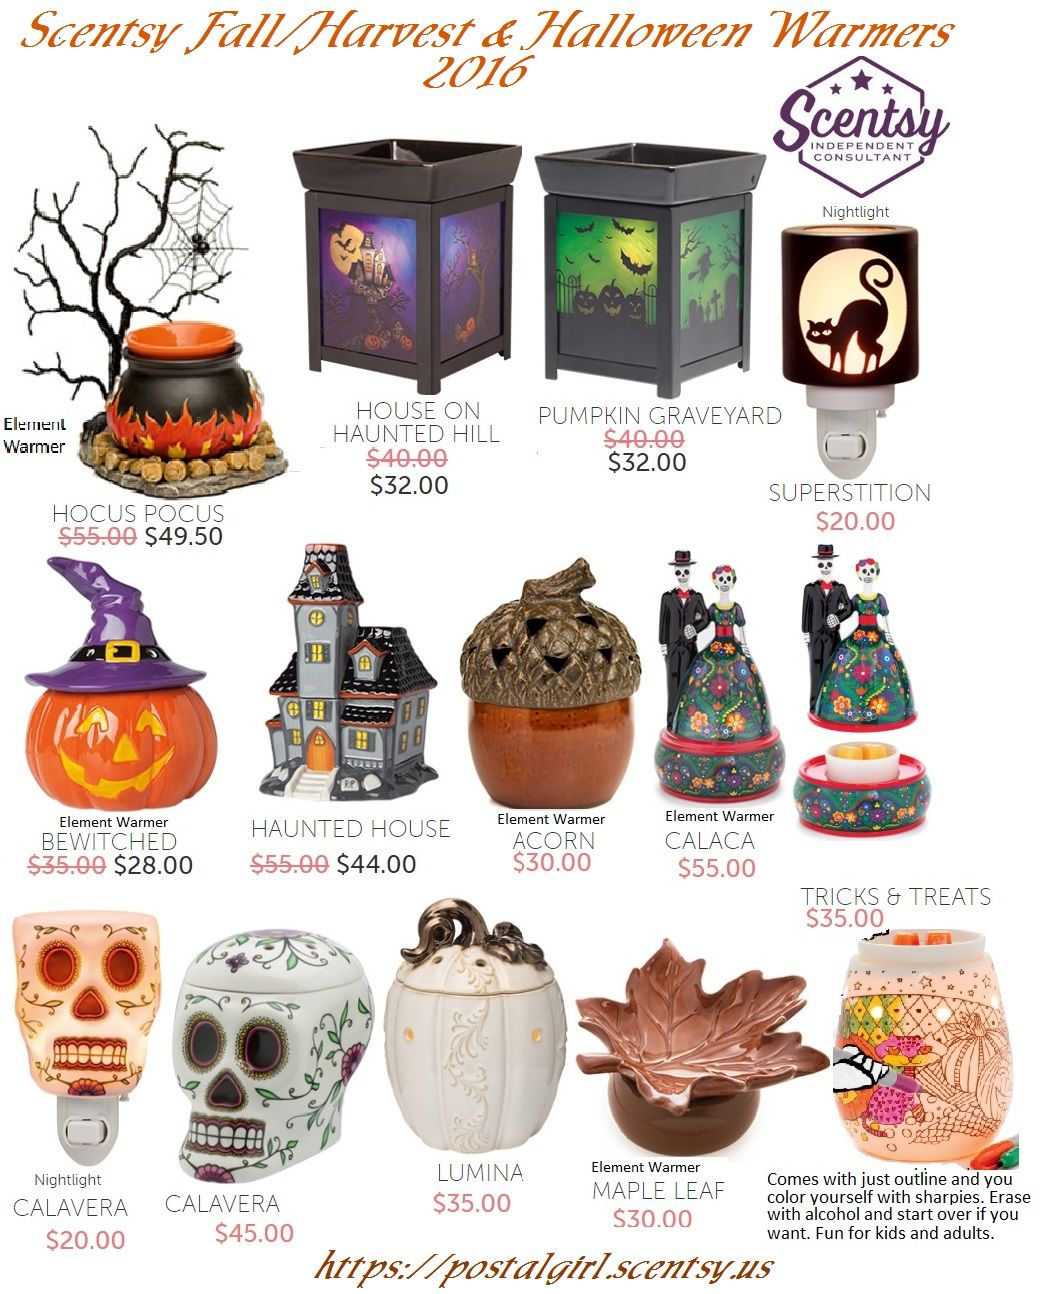 Scentsy Harvest 2016 Fall and Halloween Warmers and